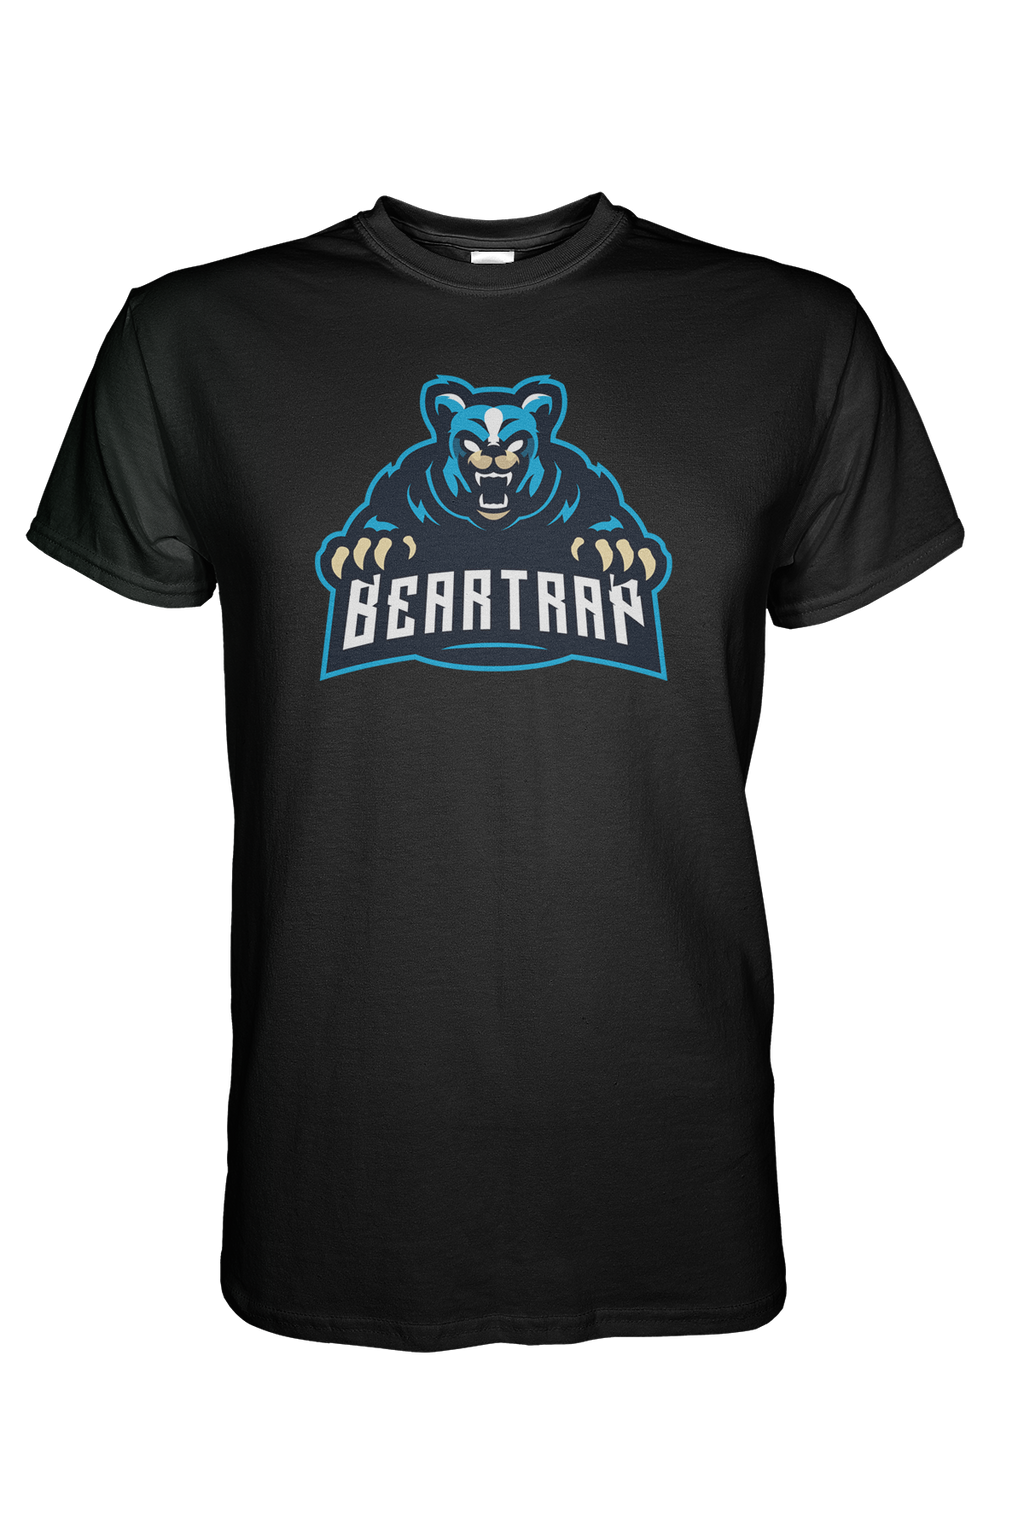 BearTrap Logo T-Shirt